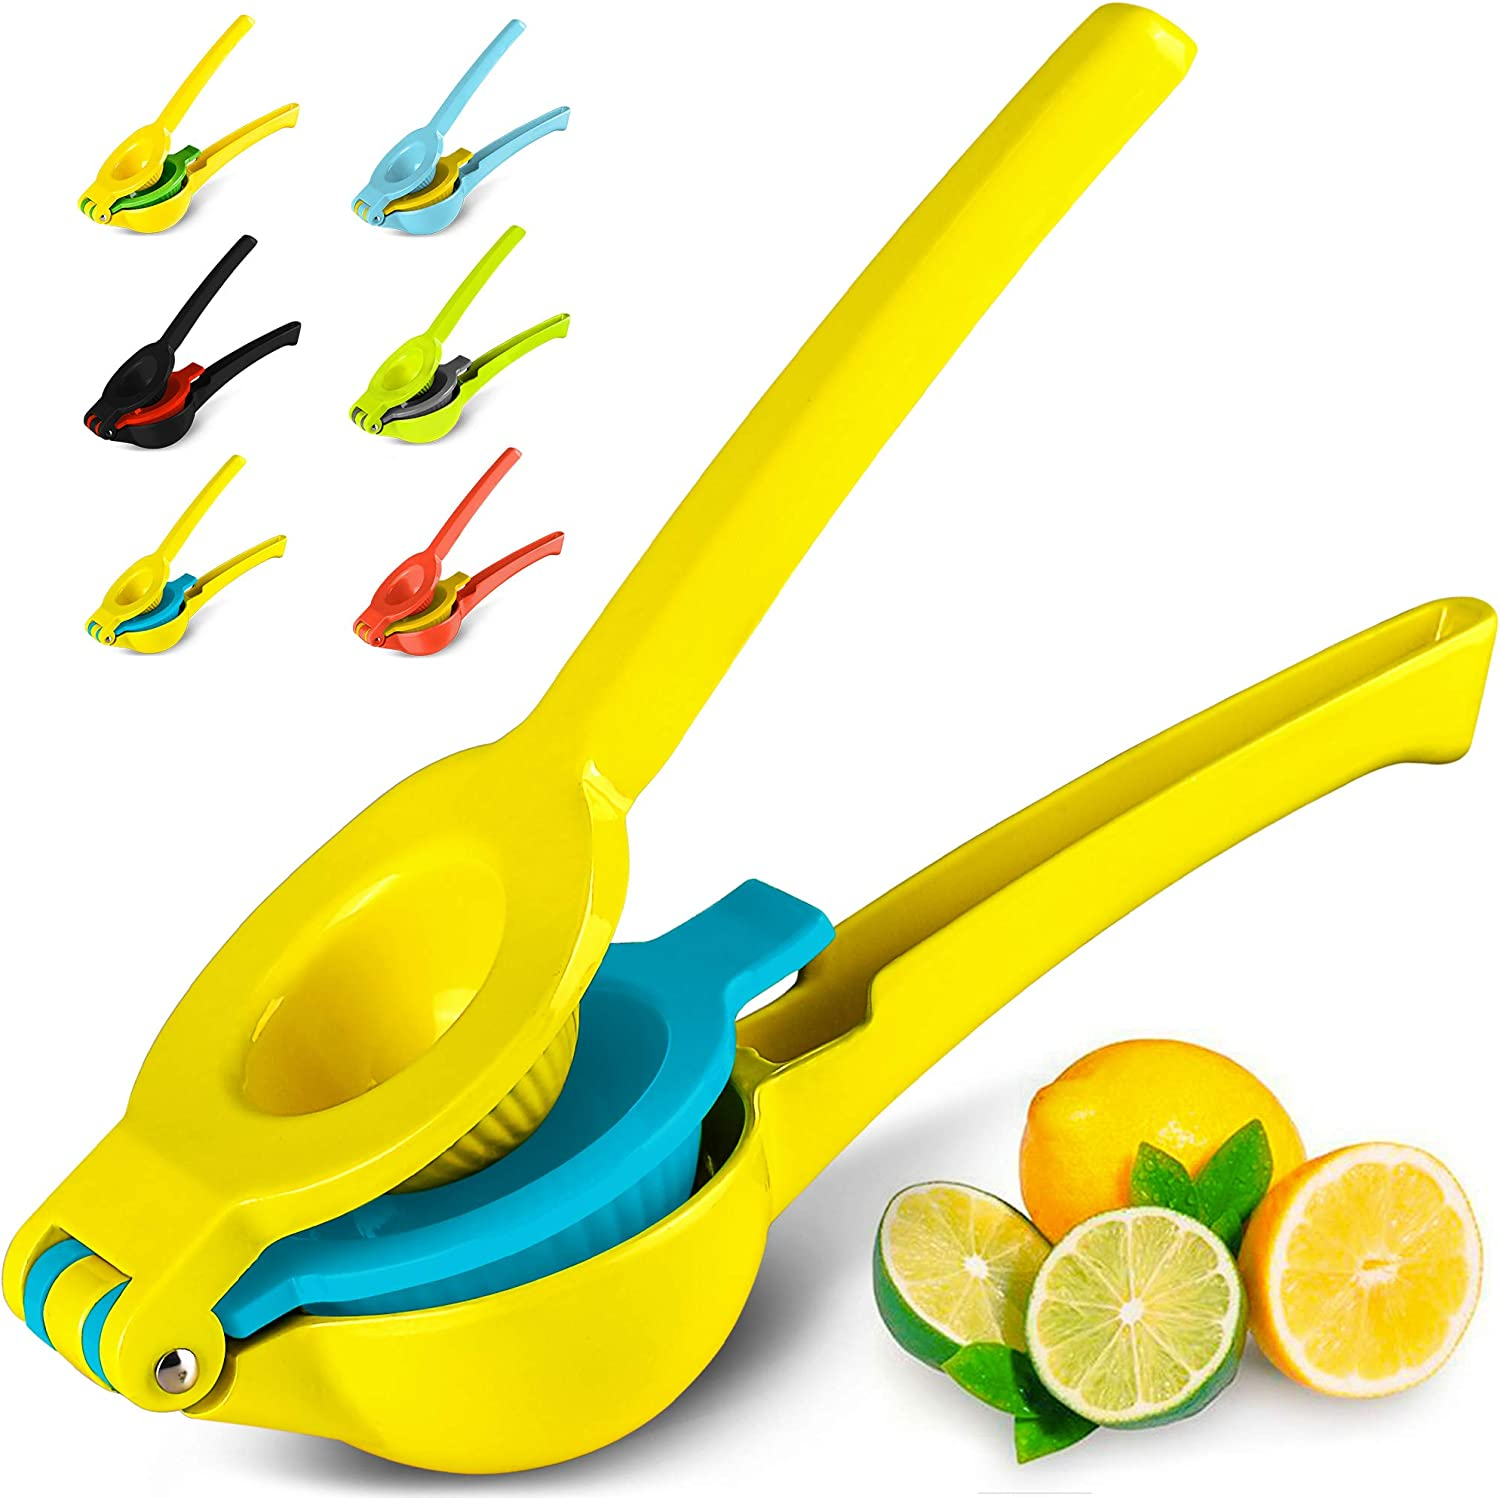 Top Rated Zulay Premium Quality Metal Lemon Lime Squeezer - Manual Citrus Press Juicer (Vibrant Yellow and Blue Atoll)